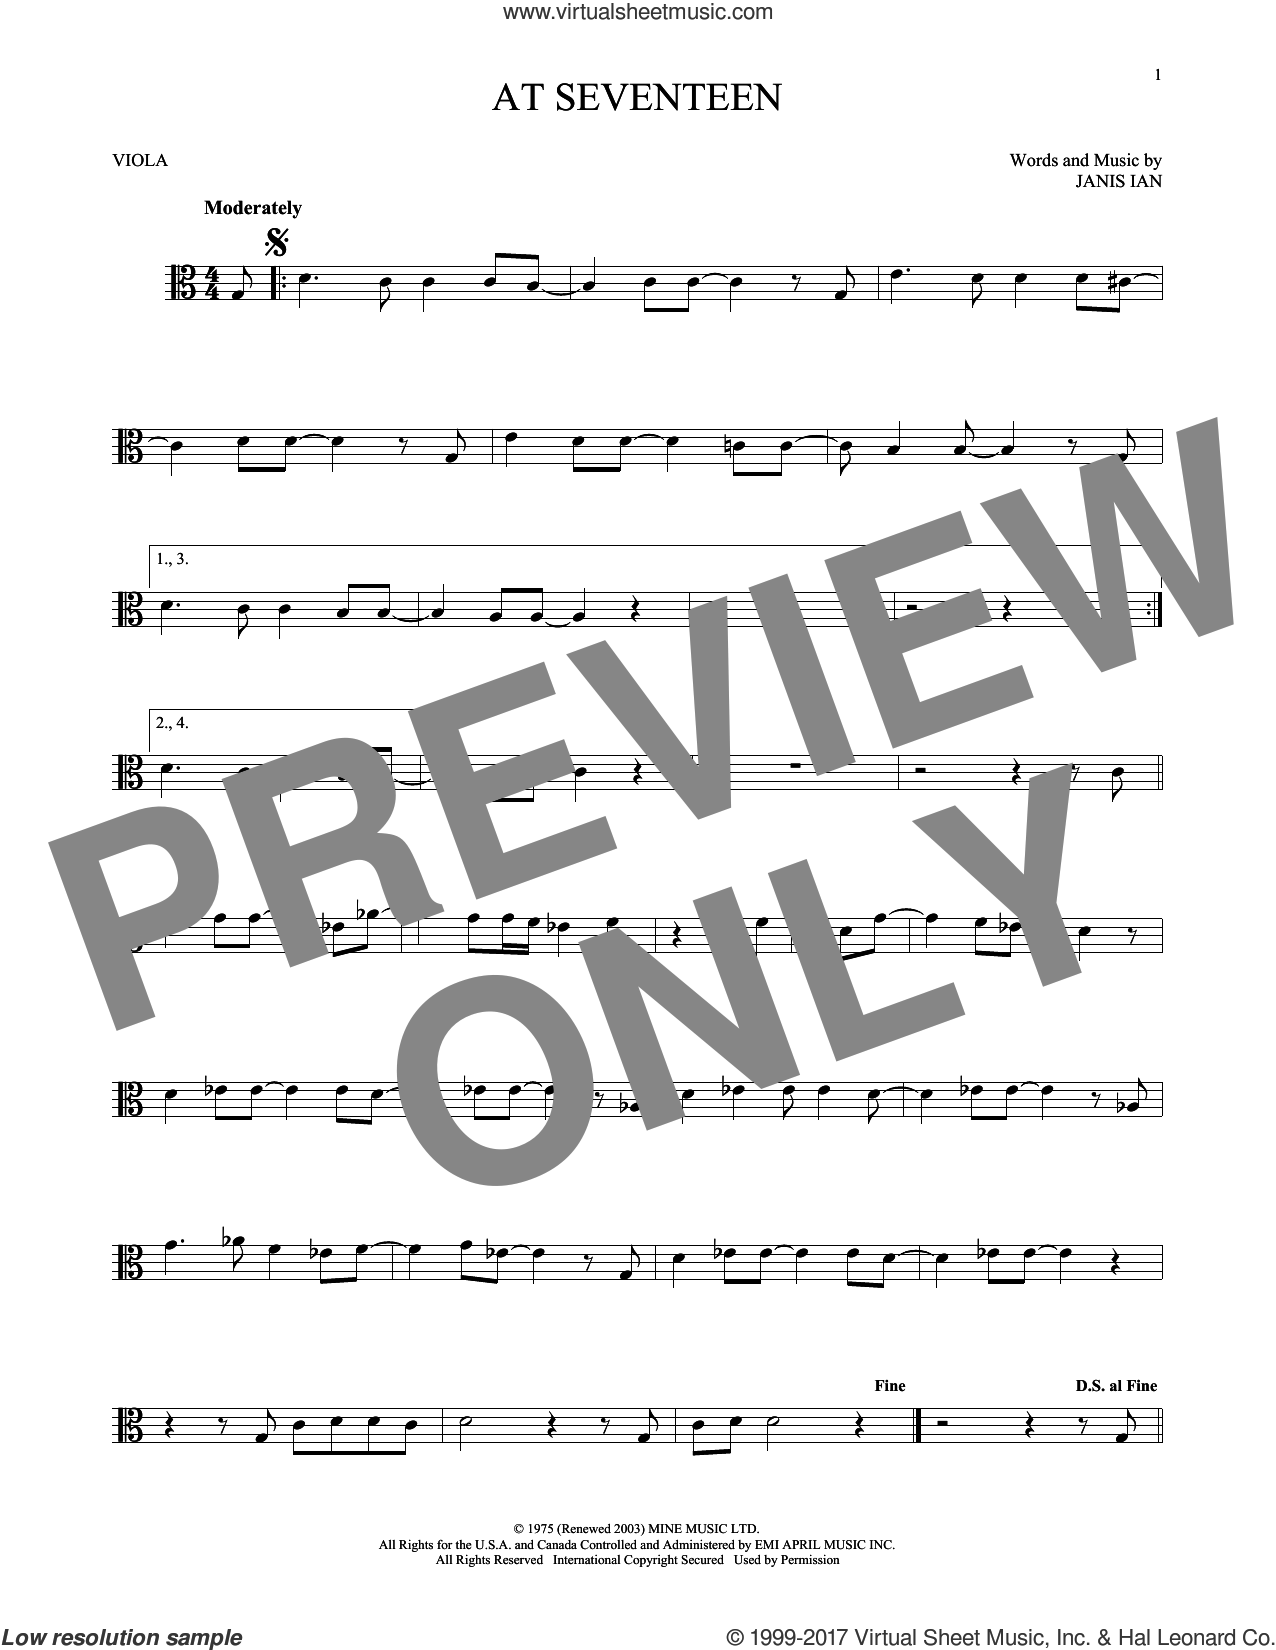 At Seventeen sheet music for viola solo by Janis Ian. Score Image Preview.